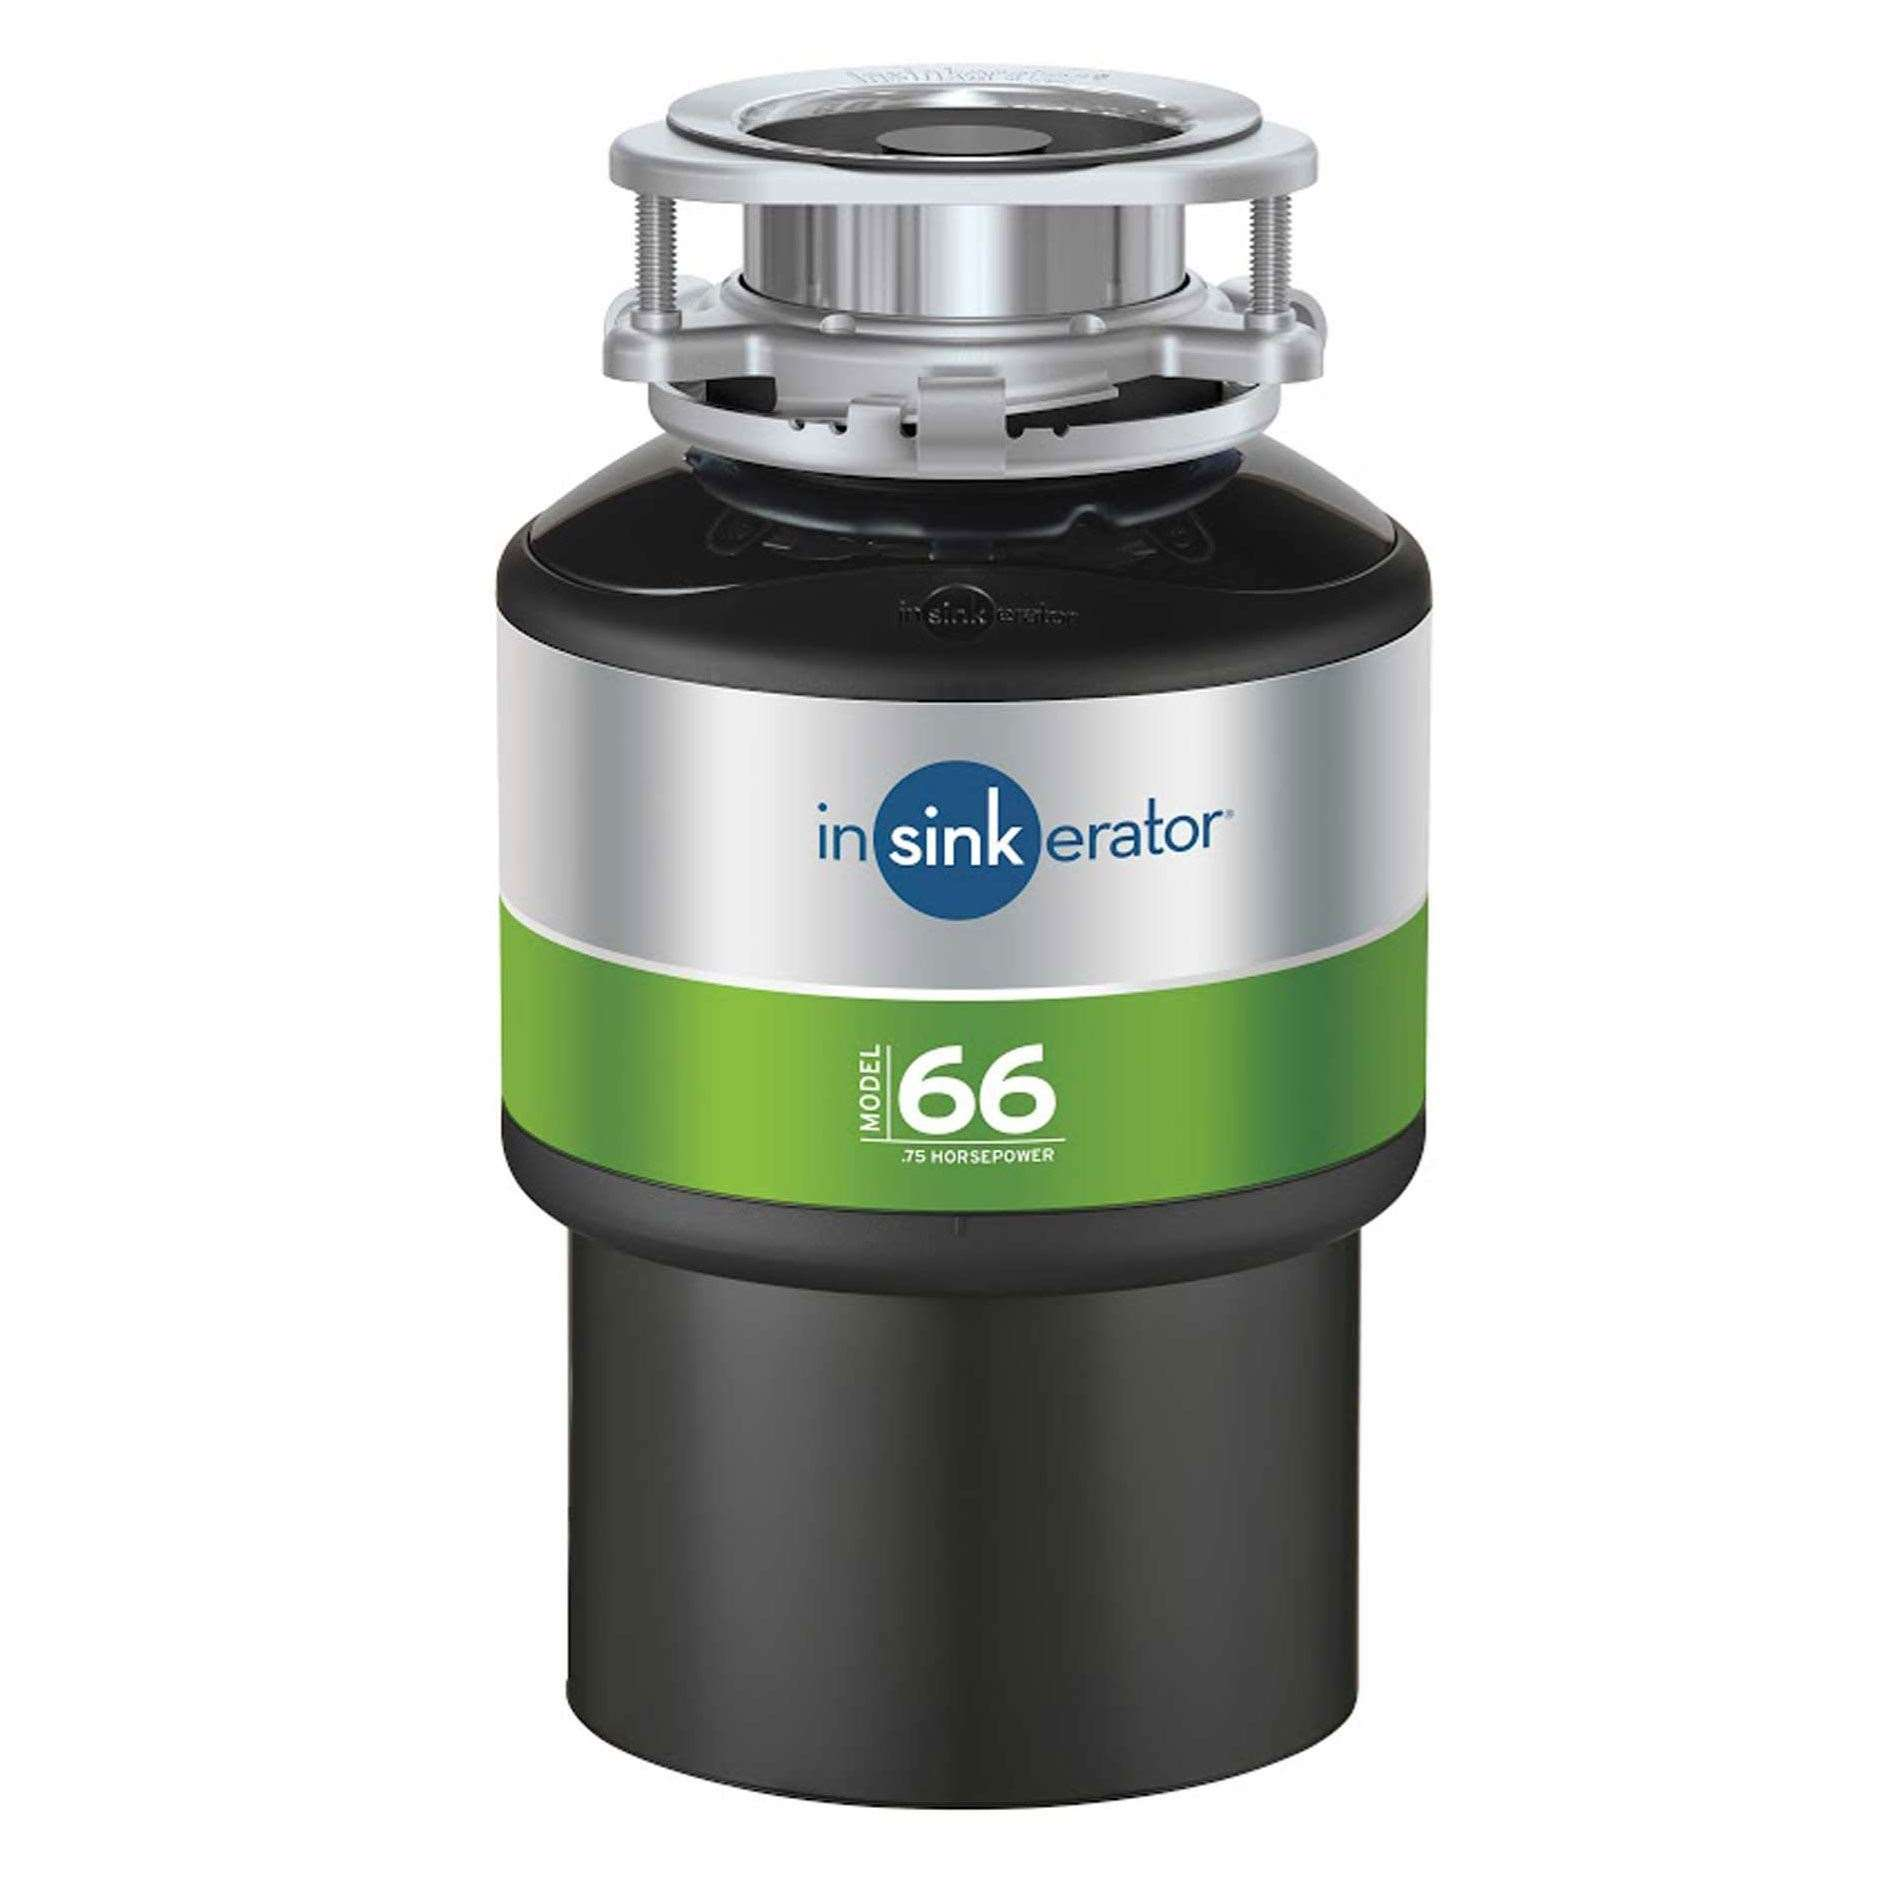 Picture of Model 66 Waste Disposal